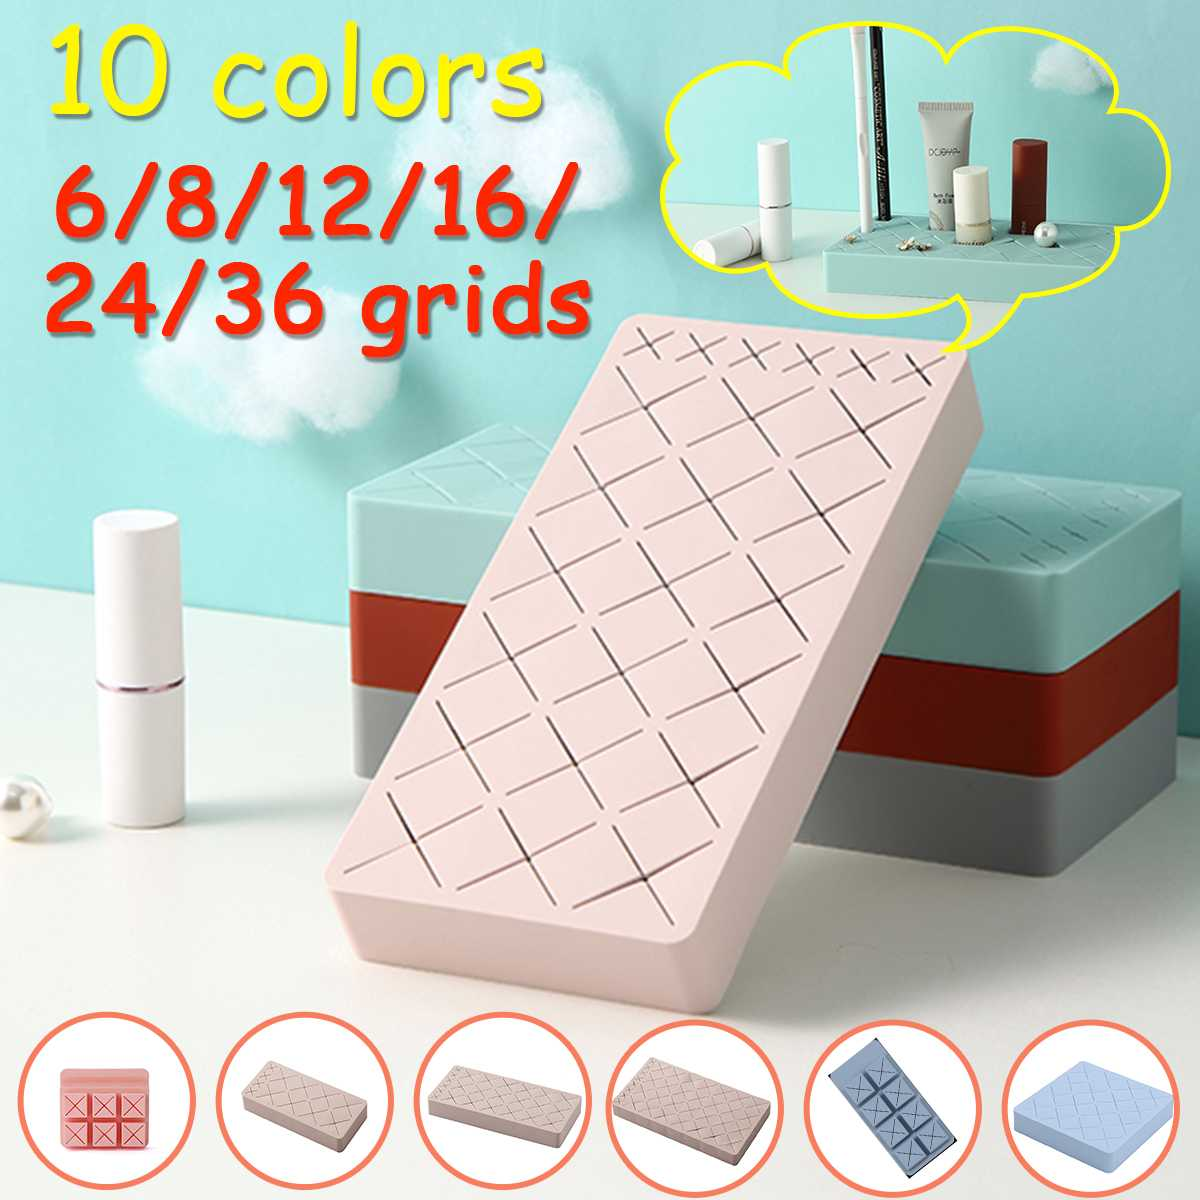 Silicone Lipstick Storage Box Makeup Organizer Cosmetic Display Stand Make -up Brush Eyebrow Pencil Holder For Cosmetics